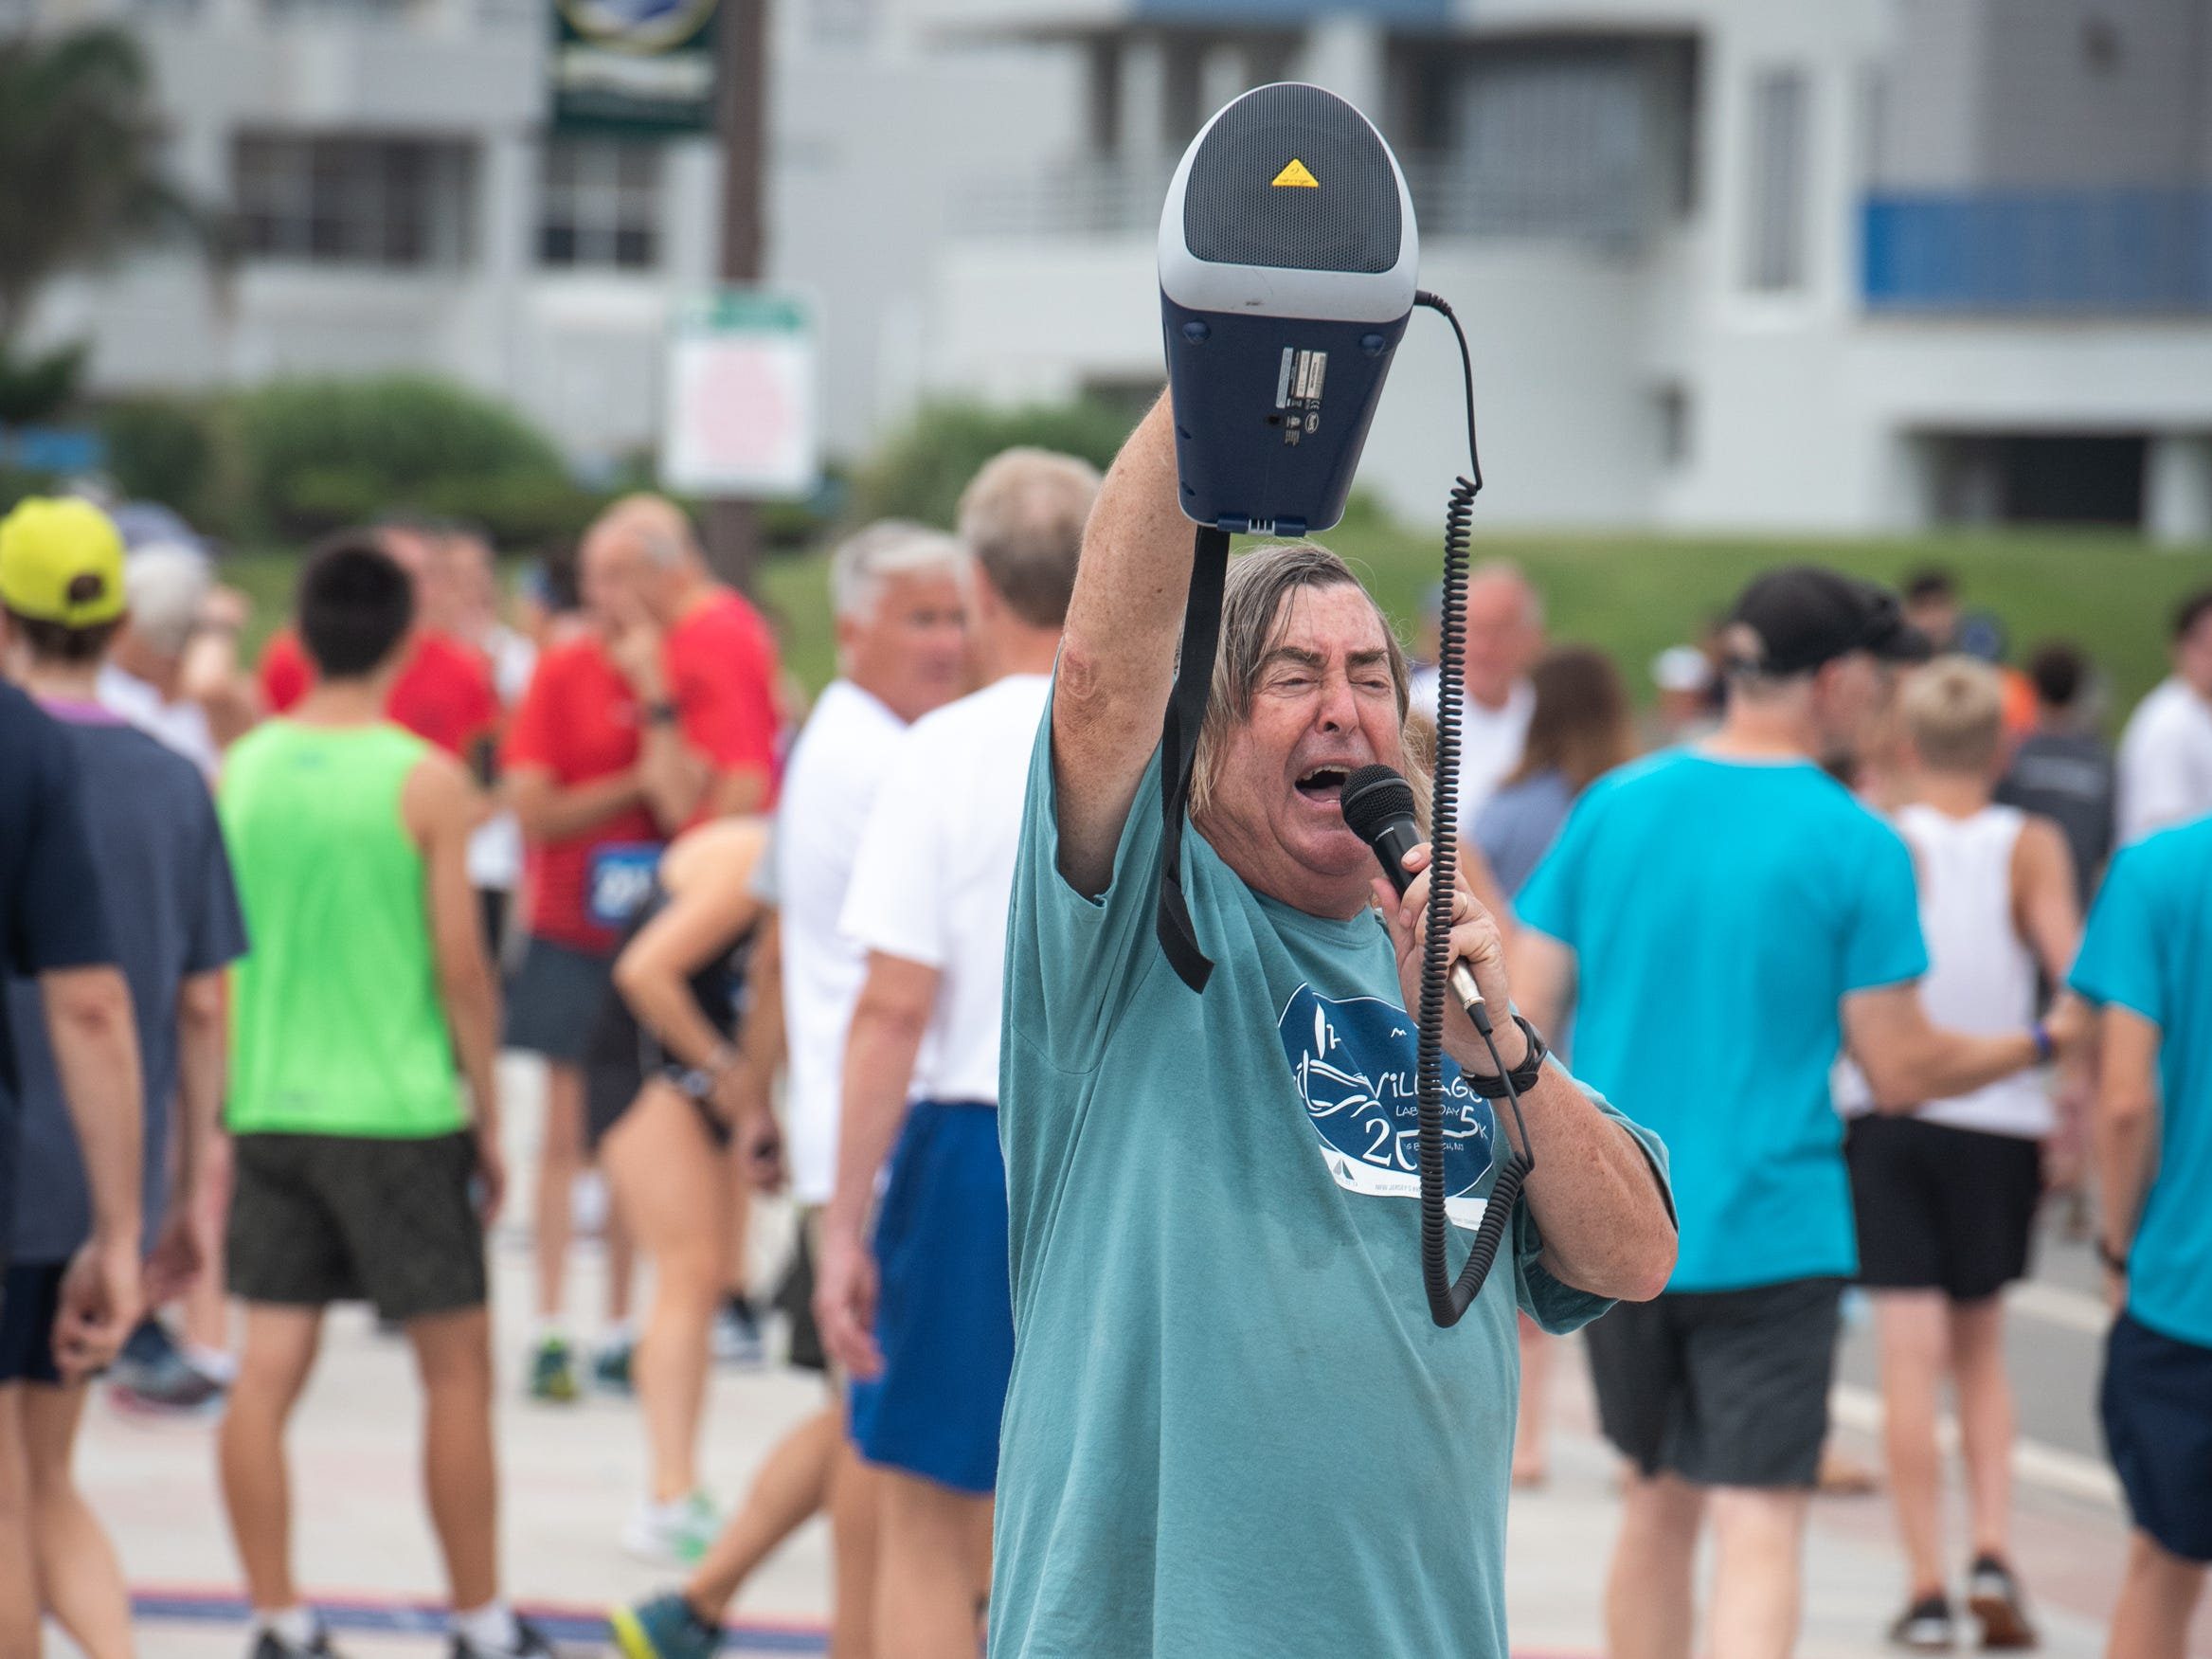 Race Director for the Pier House 5K run, Philip Hinck calls the runners to the starting line. The race was held along the ocean in the north end of Long Branch on Monday, September 3, 2018.  / Russ DeSantis for the Asbury Park Press